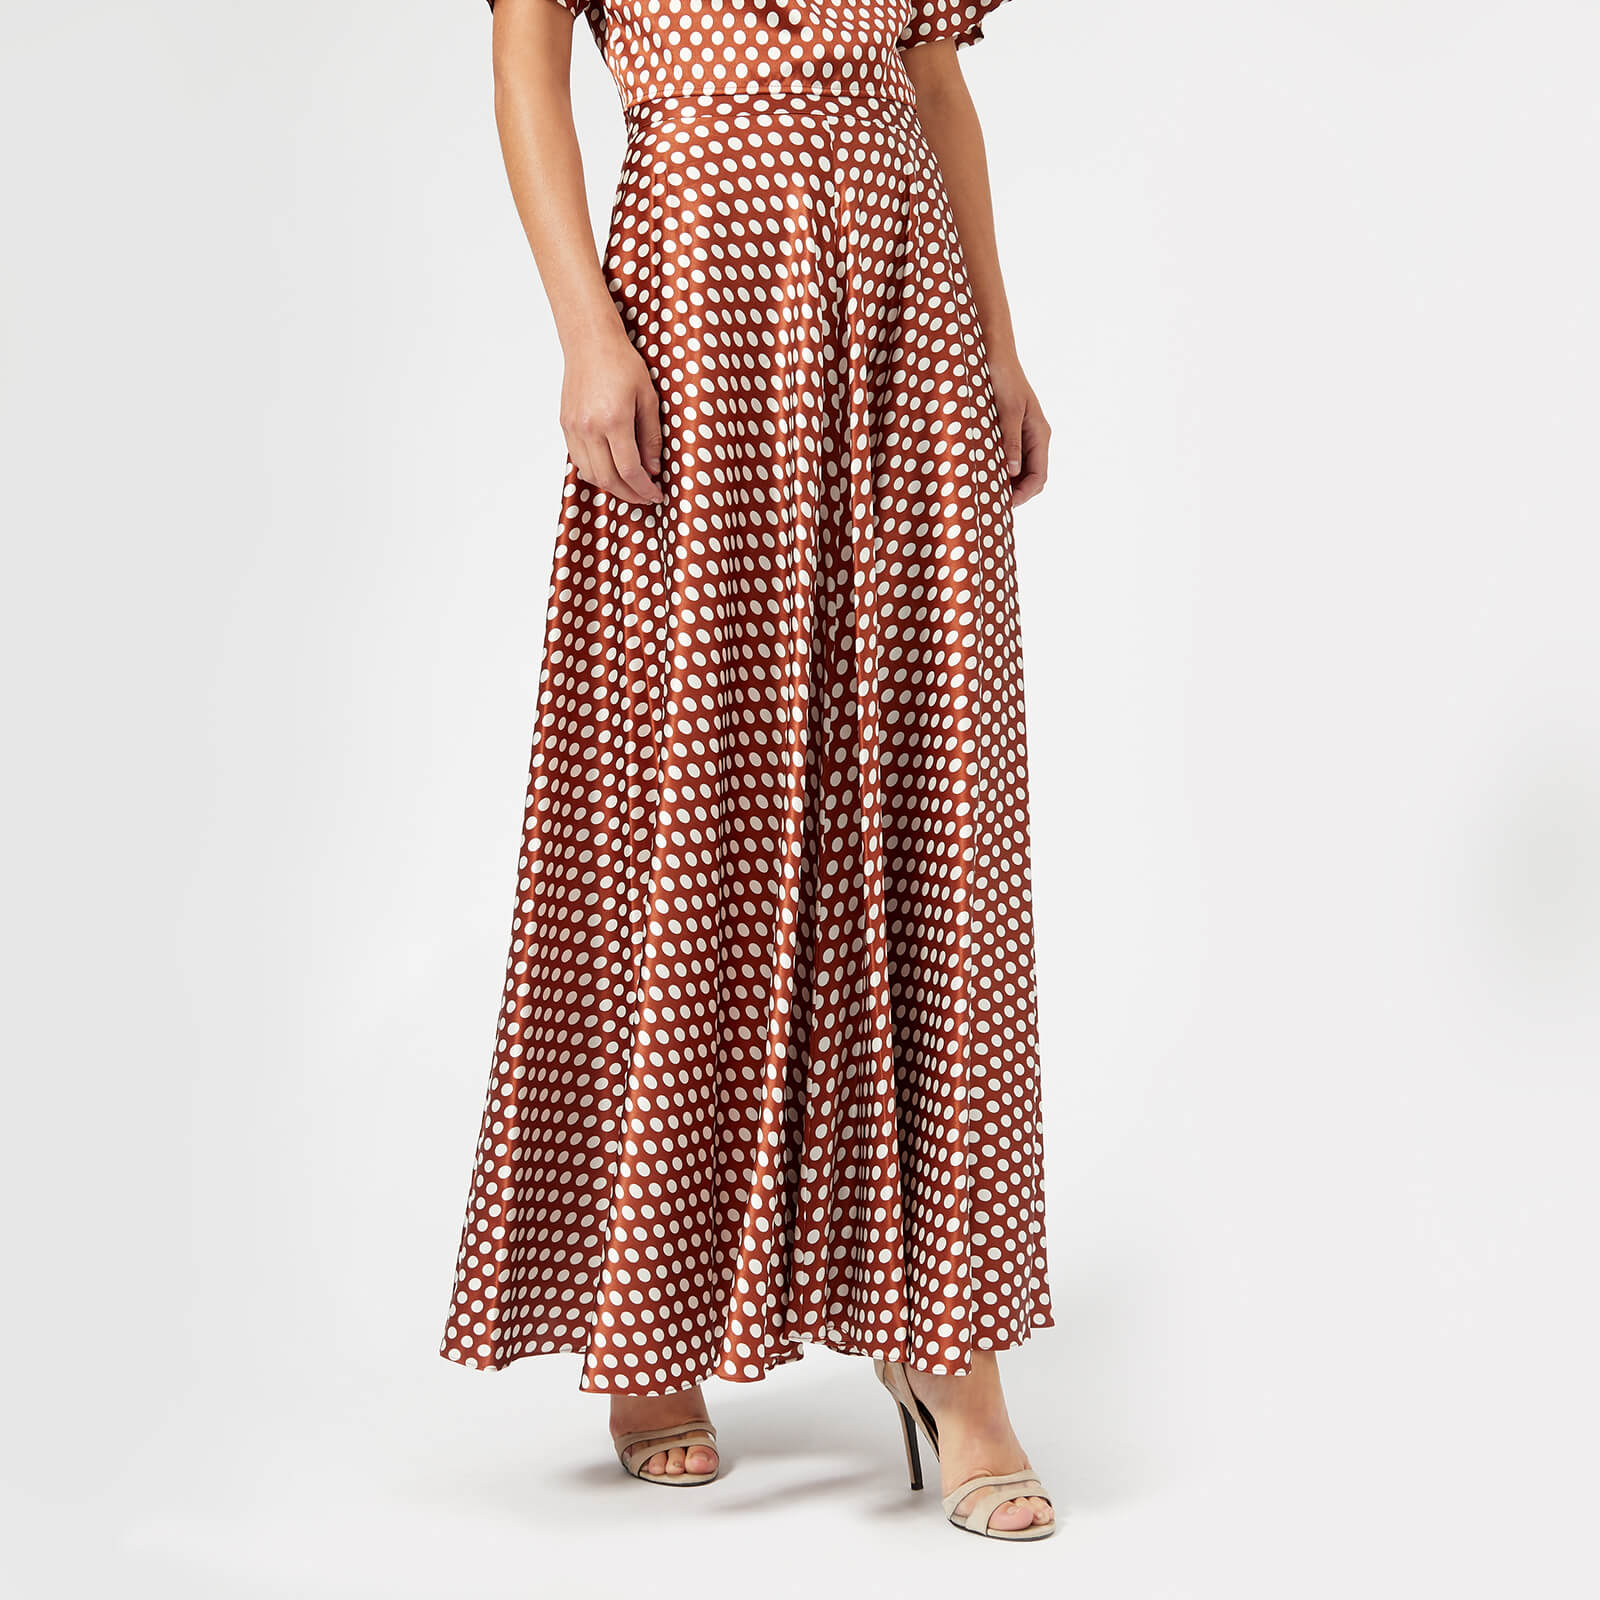 0bef29f51fdc43 Diane von Furstenberg Women s High Waisted Draped Maxi Skirt - Baker Dot  Small Sienna - Free UK Delivery over £50